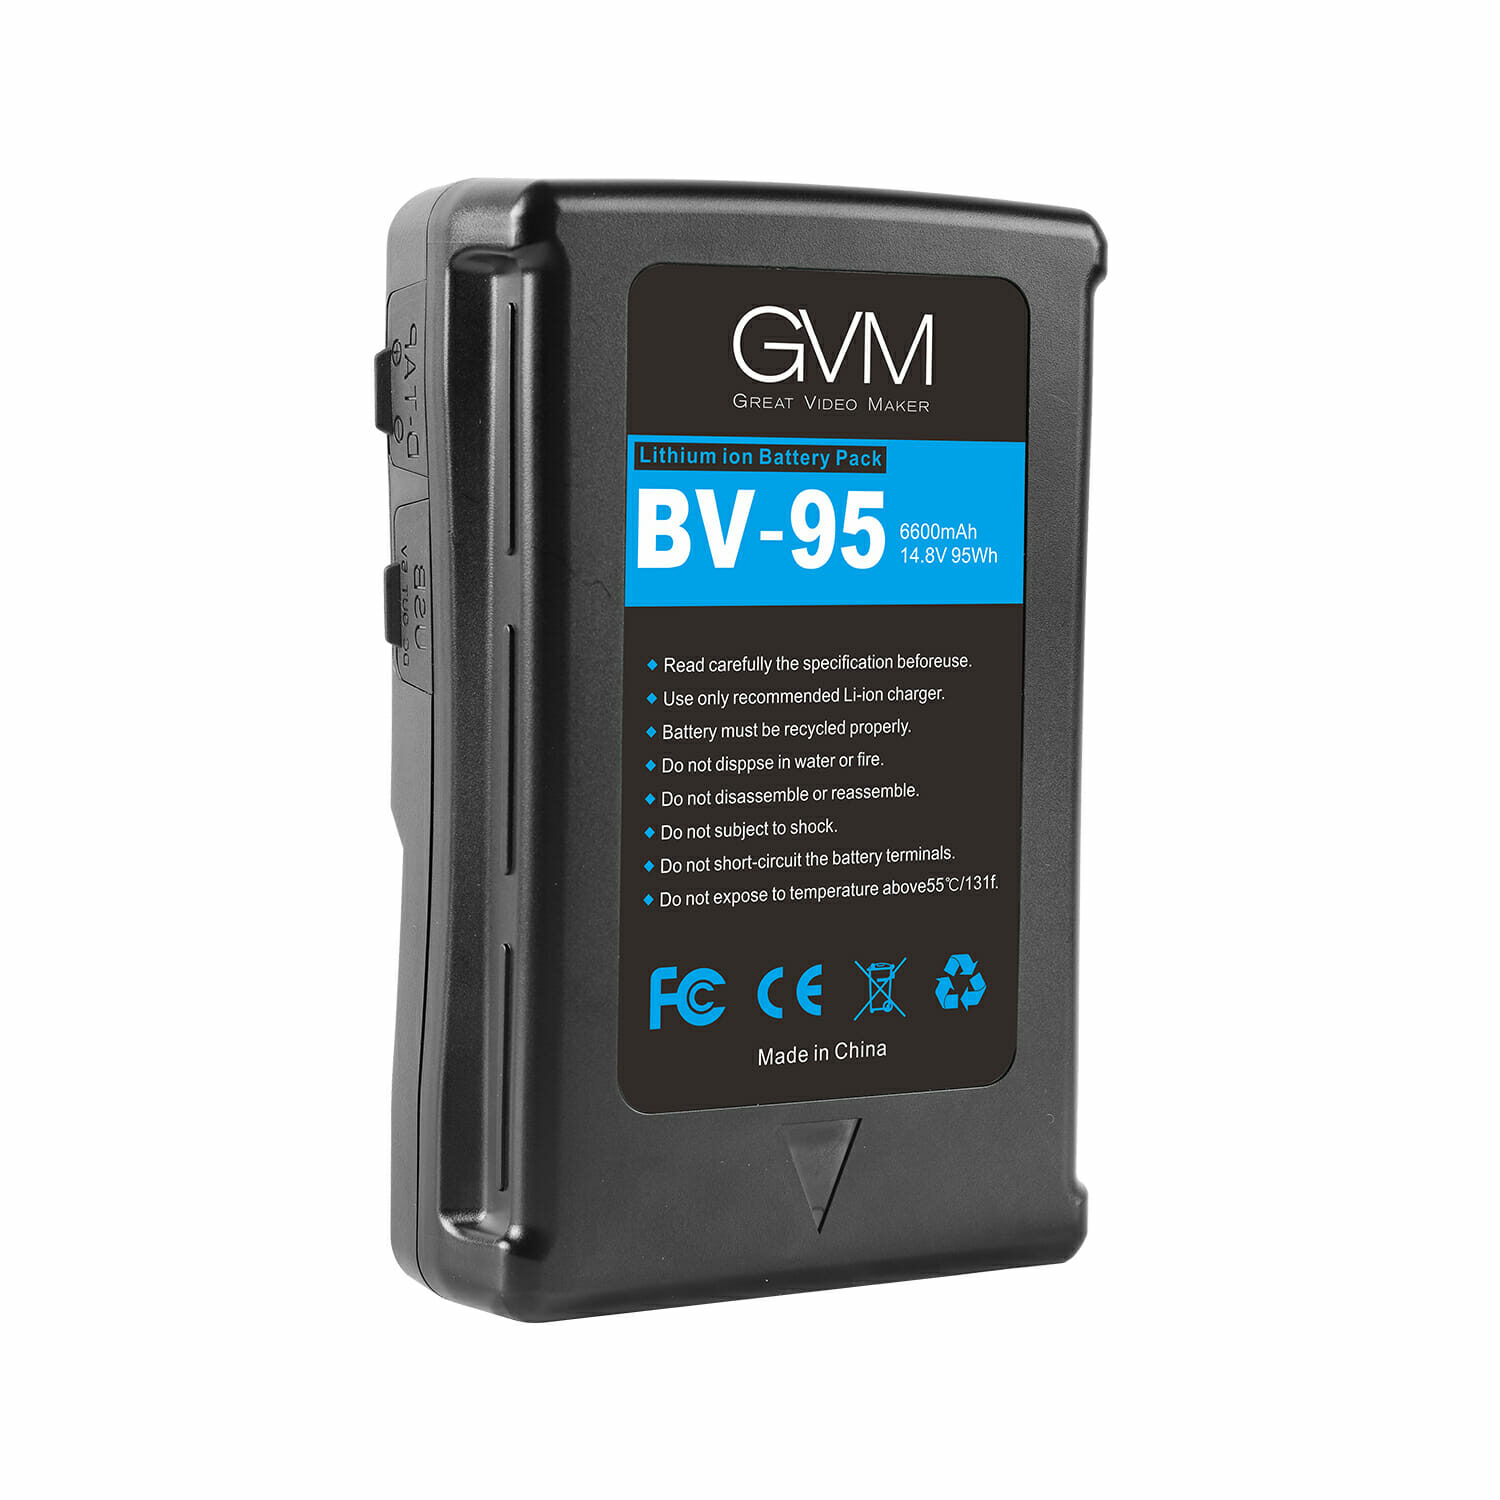 GVM BV-95 Battery both D-Tap and DC outputs